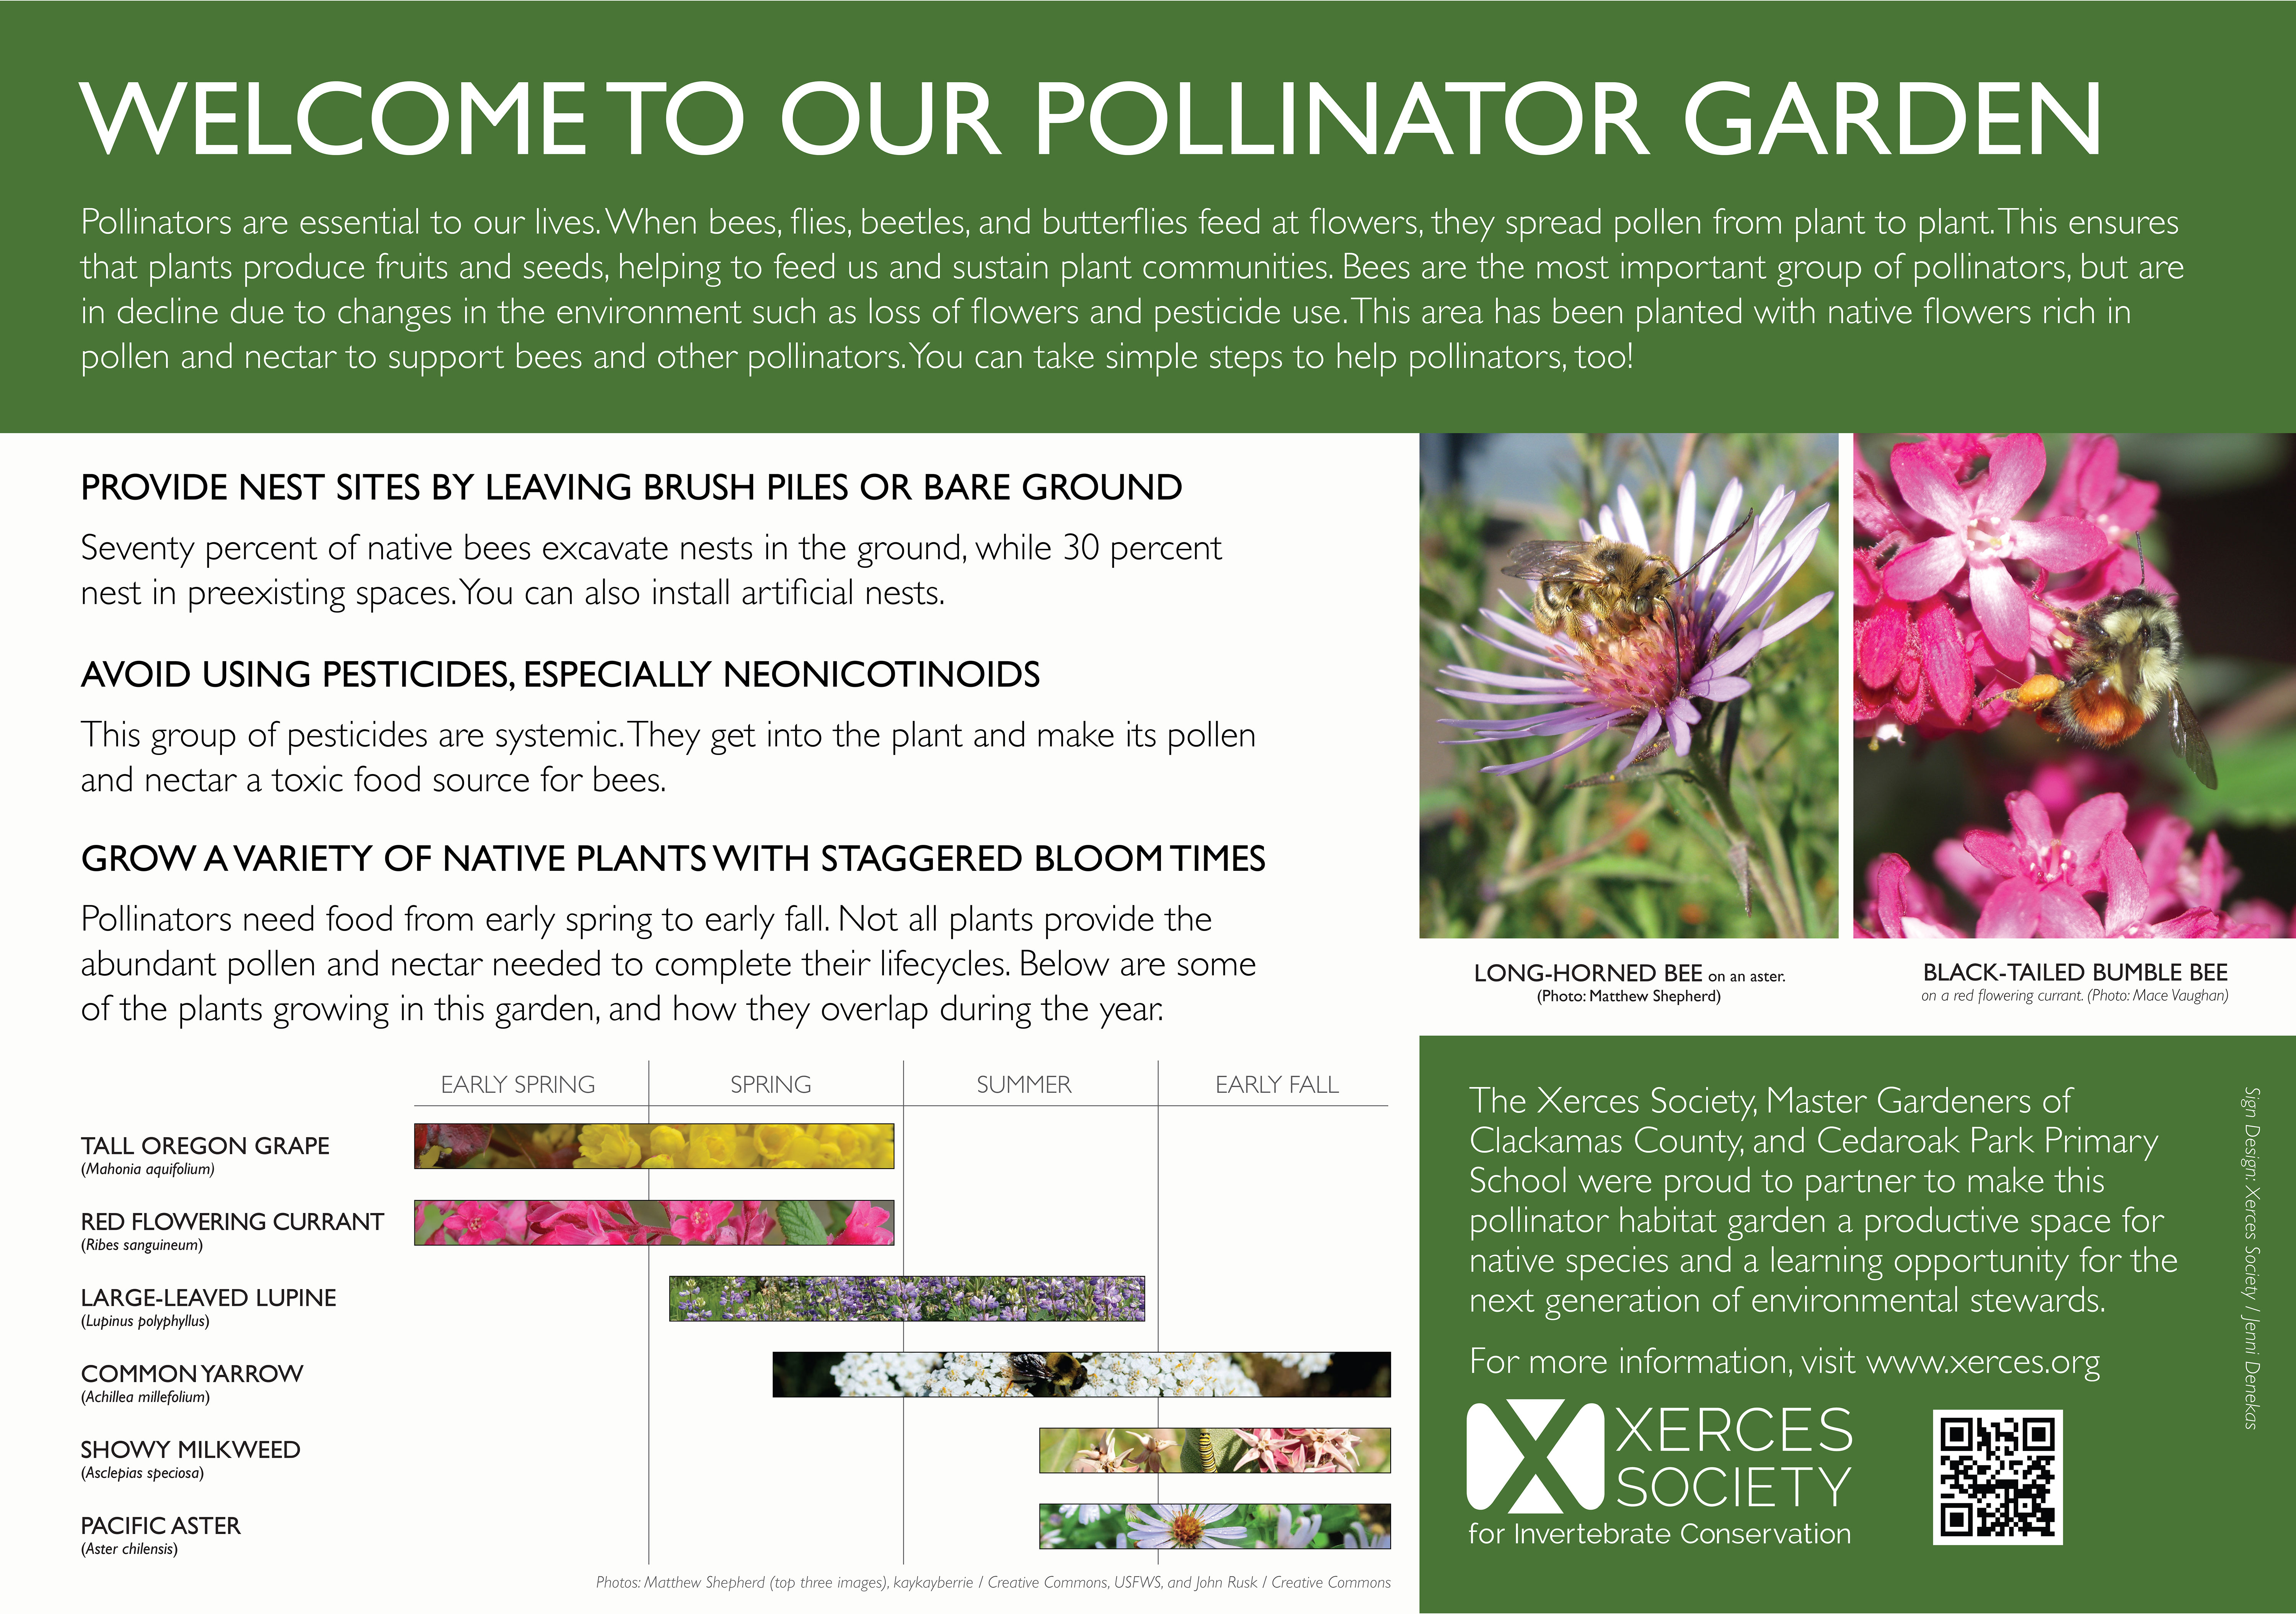 An interpretive panel welcomes visitors to a pollinator garden and provides tips on gardening for pollinators.